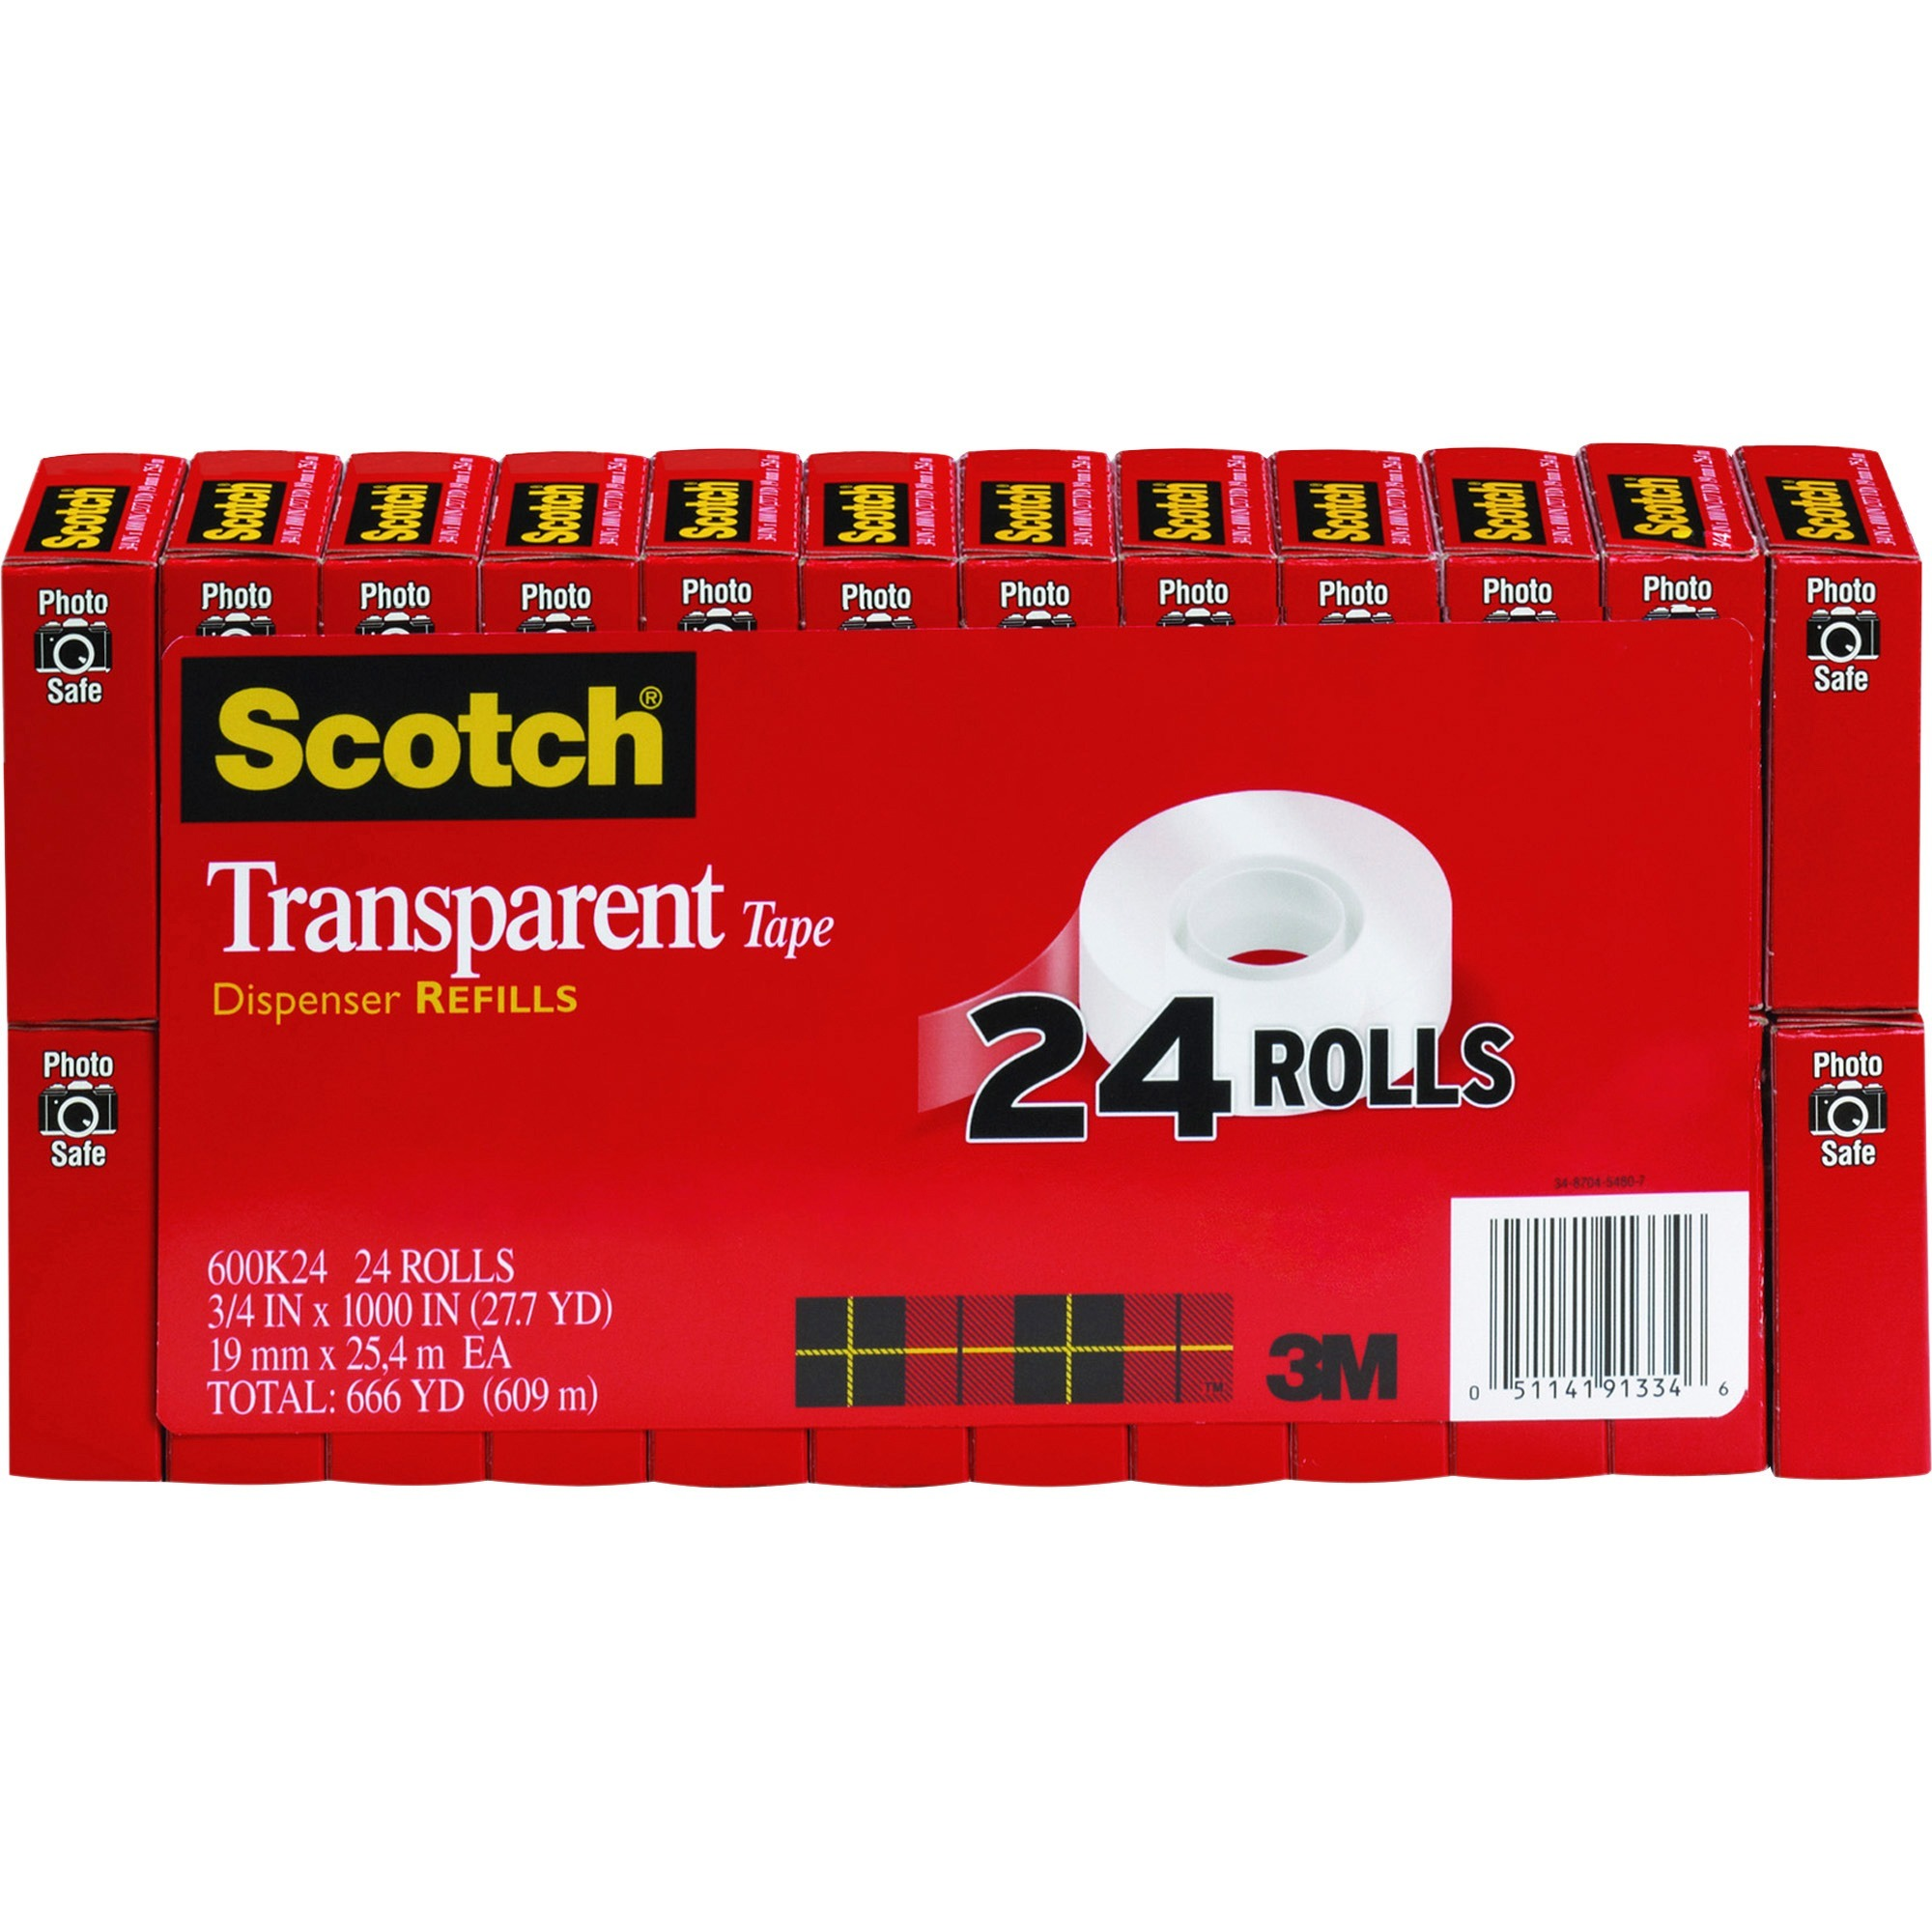 Scotch, MMM600K24, Transparent Tape Refills Value Pack, 24 / Pack, Clear